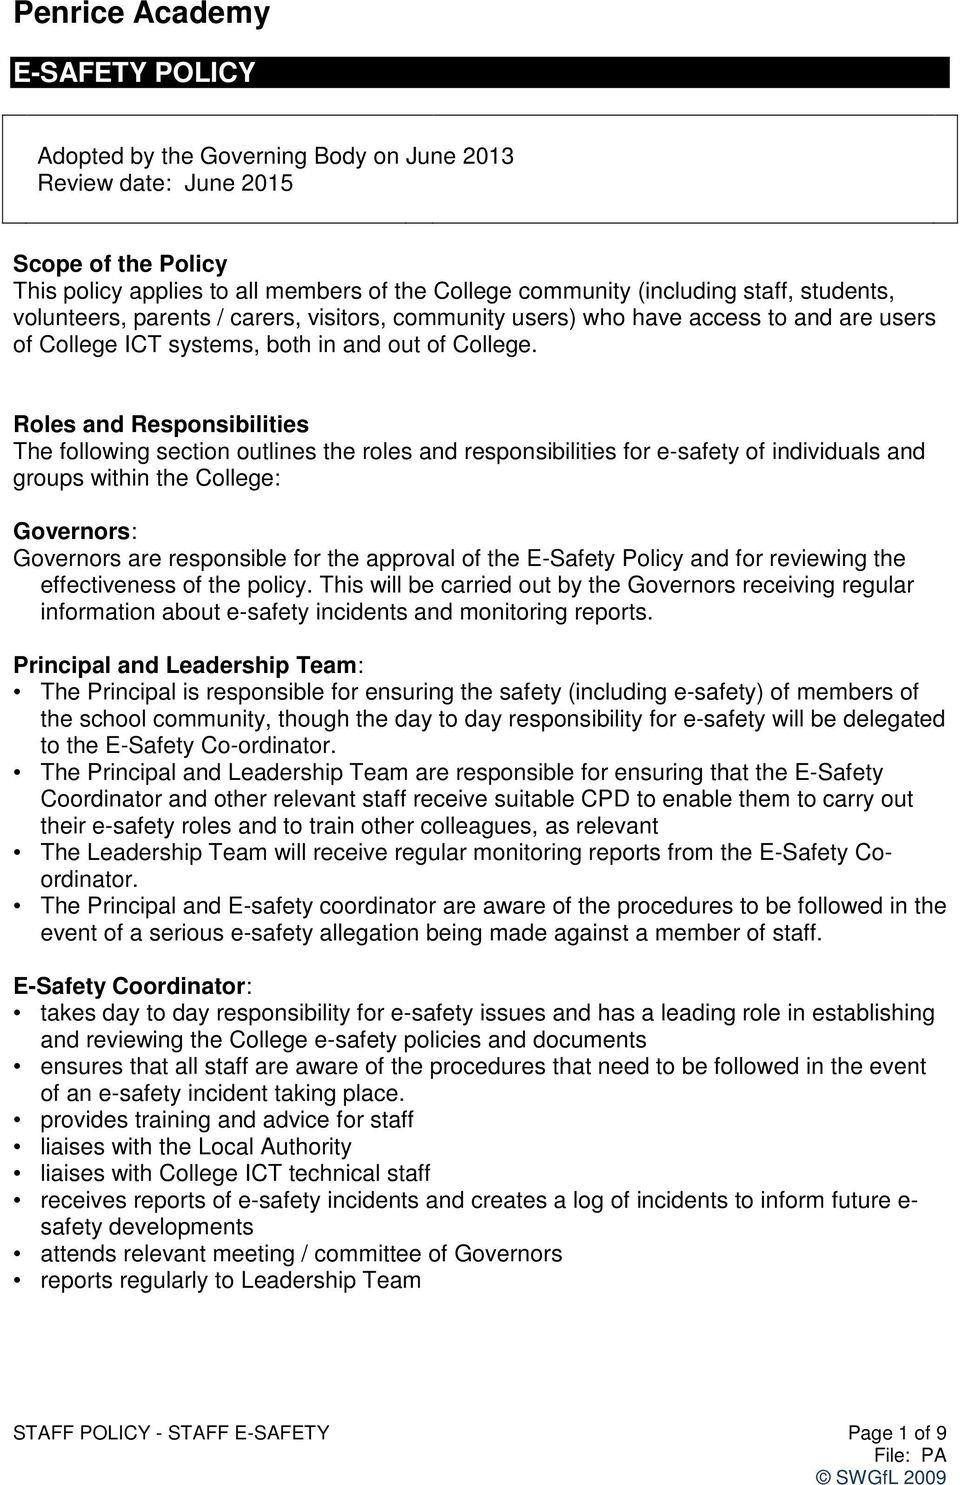 Roles and Responsibilities The following section outlines the roles and responsibilities for e-safety of individuals and groups within the College: Governors: Governors are responsible for the